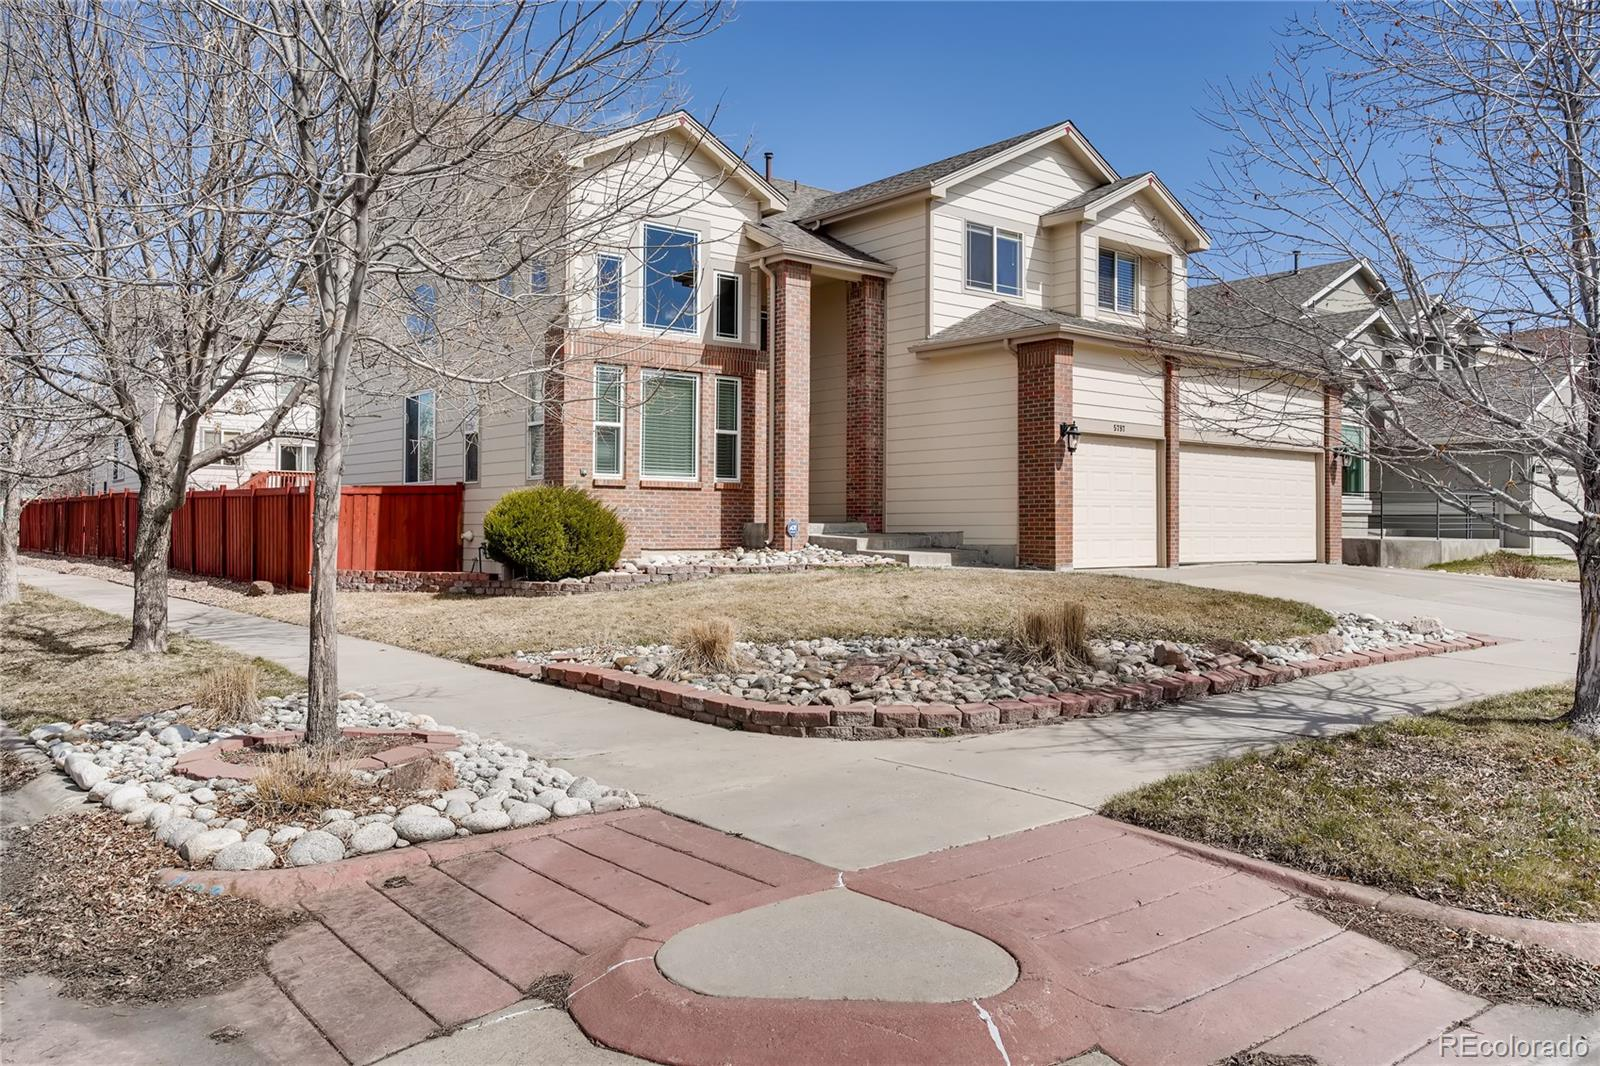 MLS# 6360296 - 2 - 5797 W Alamo Drive, Littleton, CO 80123